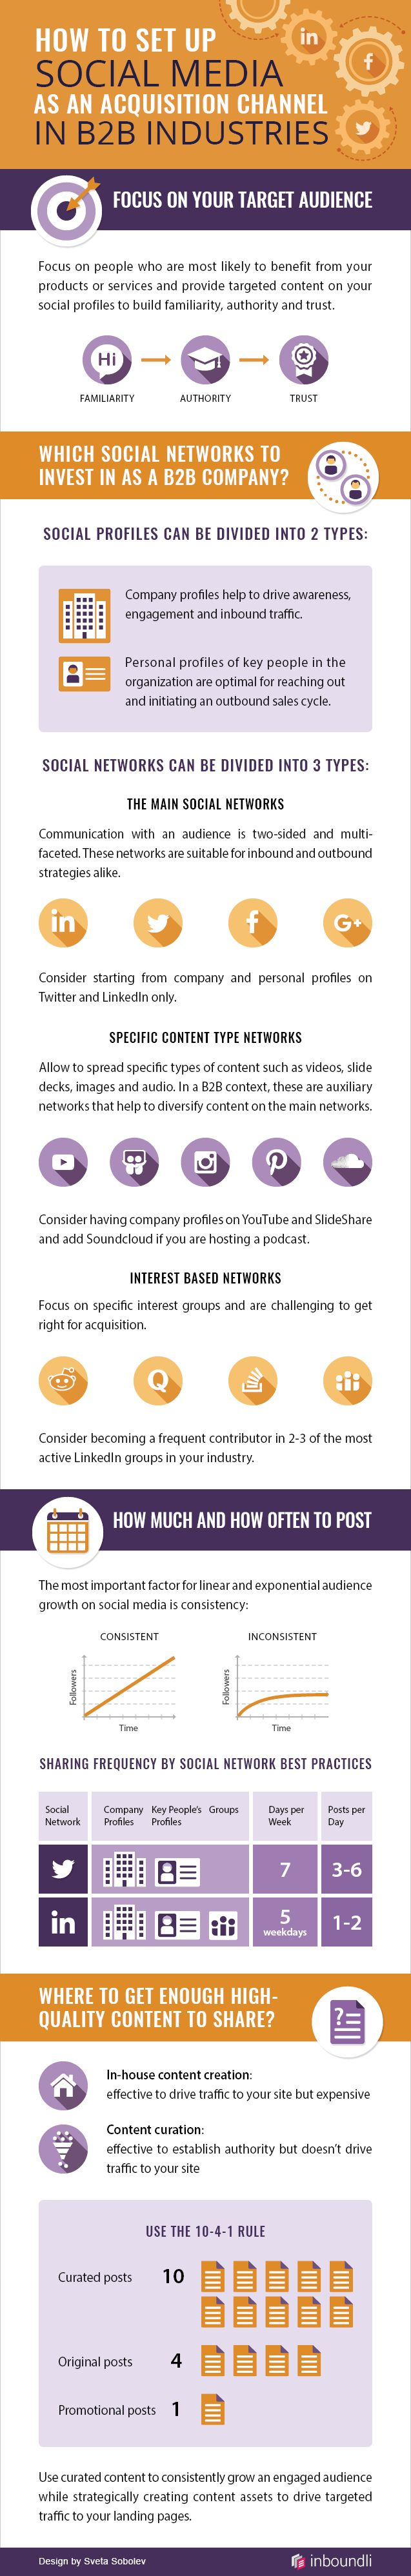 How to Set Up Social Media as an Acquisition Channel in B2B Industries [INFOGRAPHIC] #socialmedia #B2BMarketing #marketing